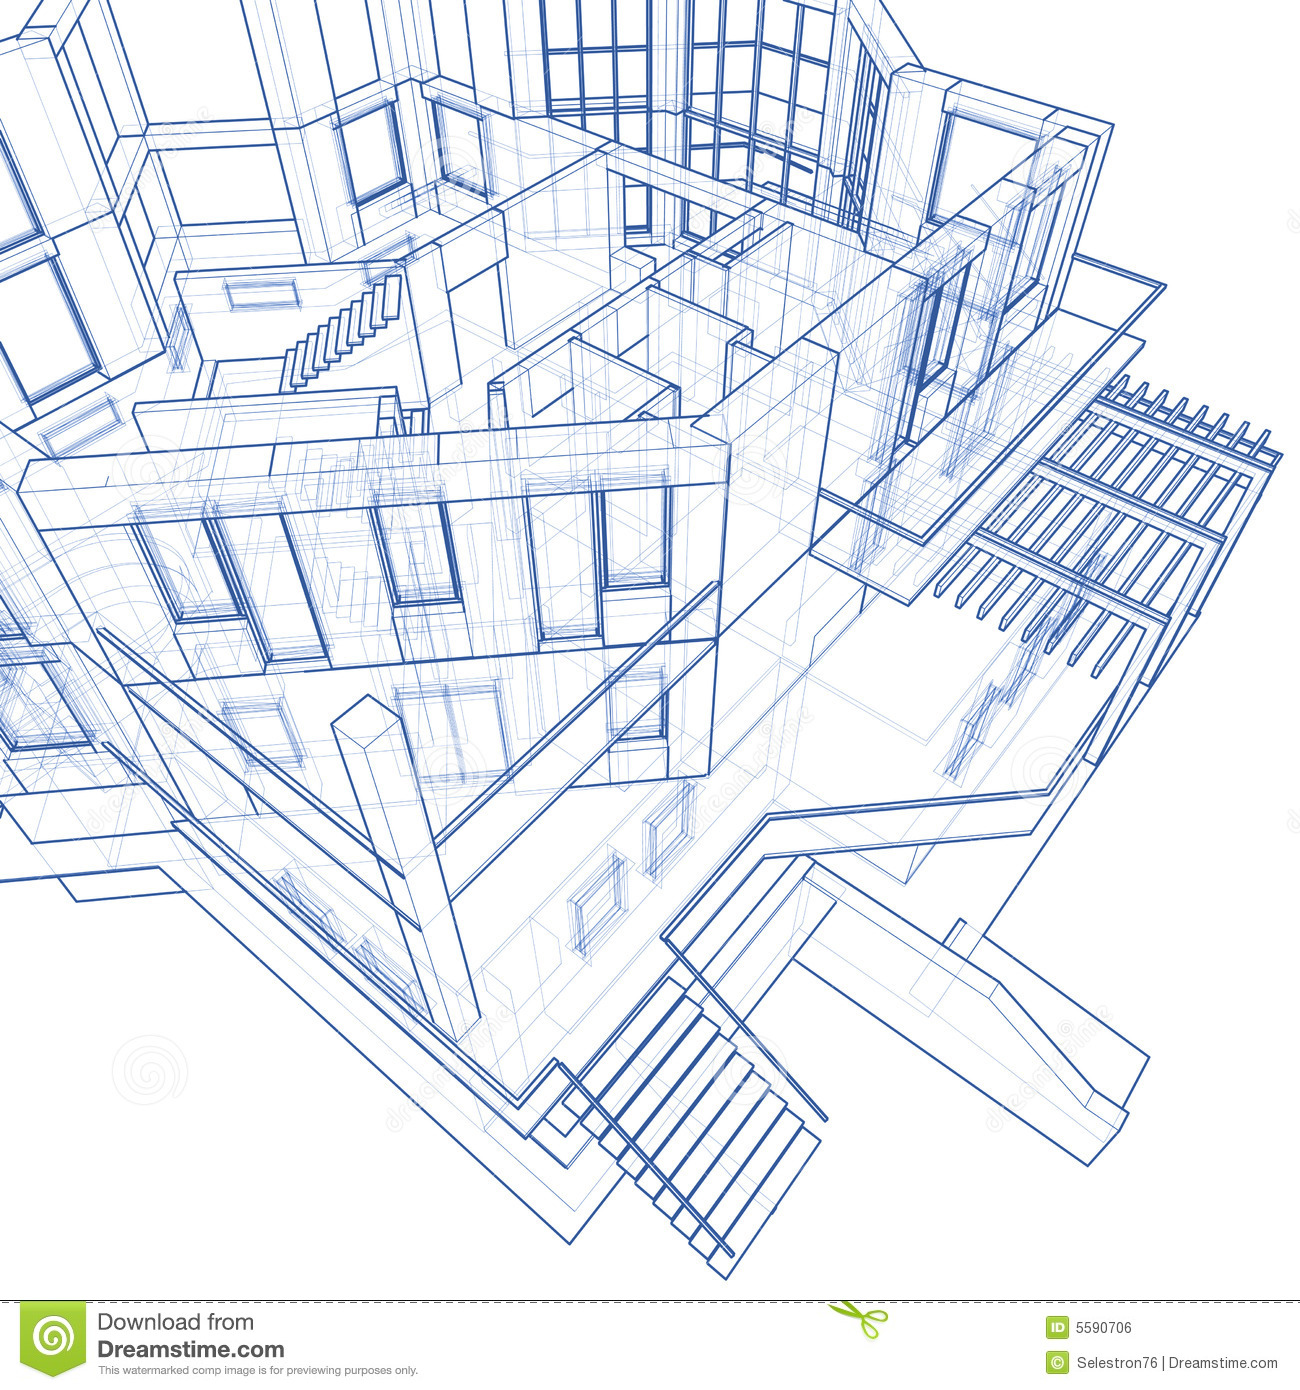 House architecture blueprint royalty free stock image for Architecture blueprints